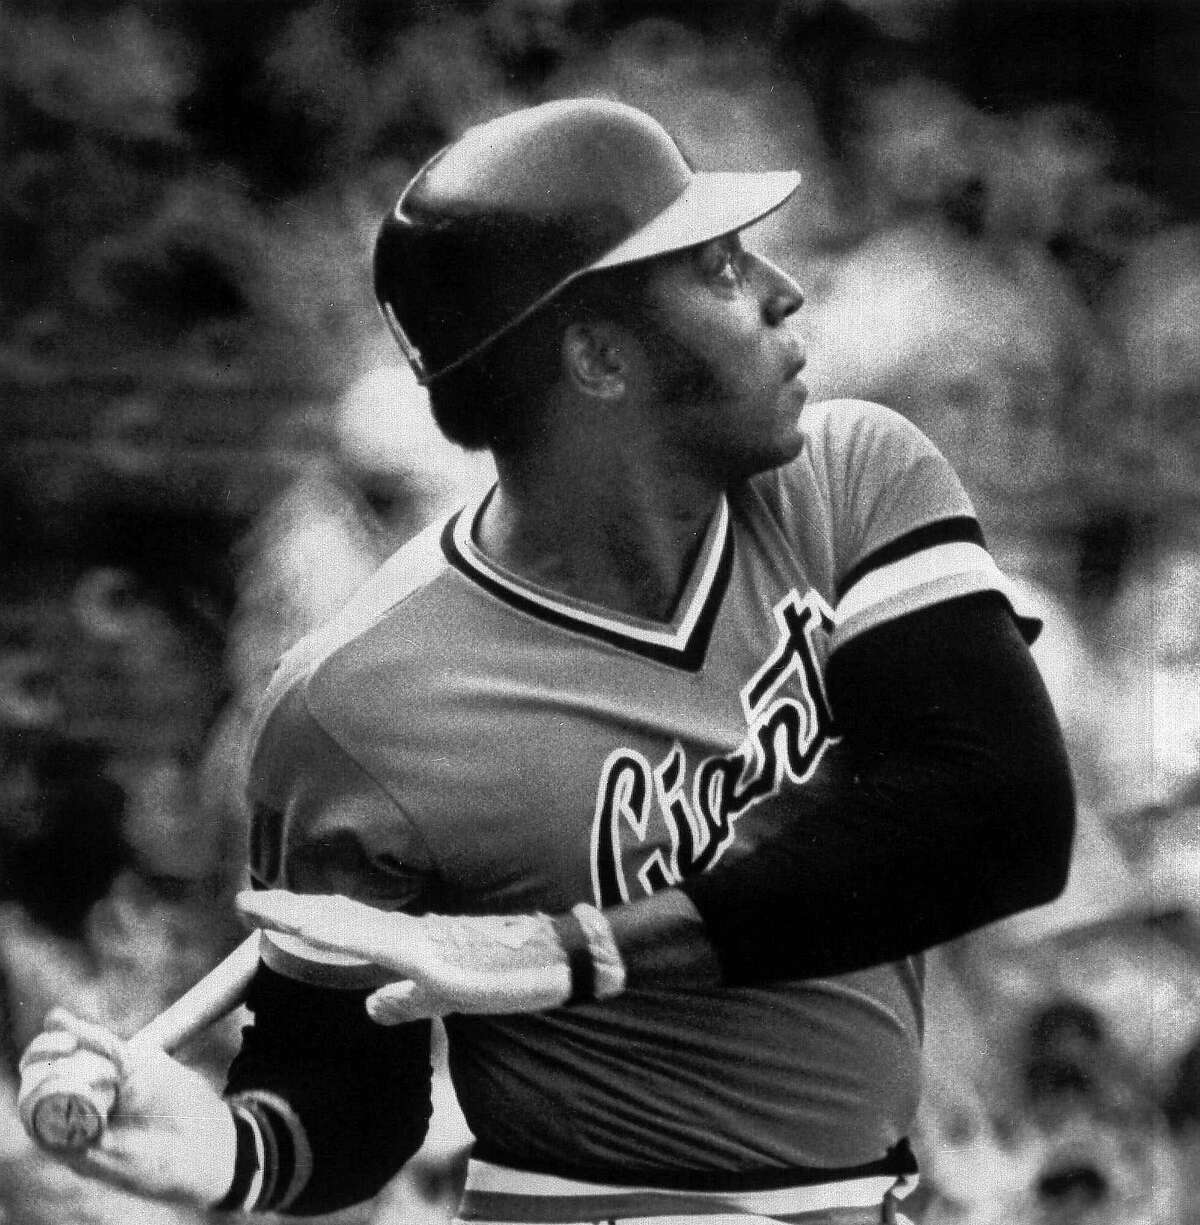 San Francisco's Giants' Willie McCovey watches as his 500th career home run goes over the left field fence in Atlanta in this June 30, 1978 photo. His home run came during the second inning against Atlanta Braves pitcher Jamie Easterly. (AP Photo)